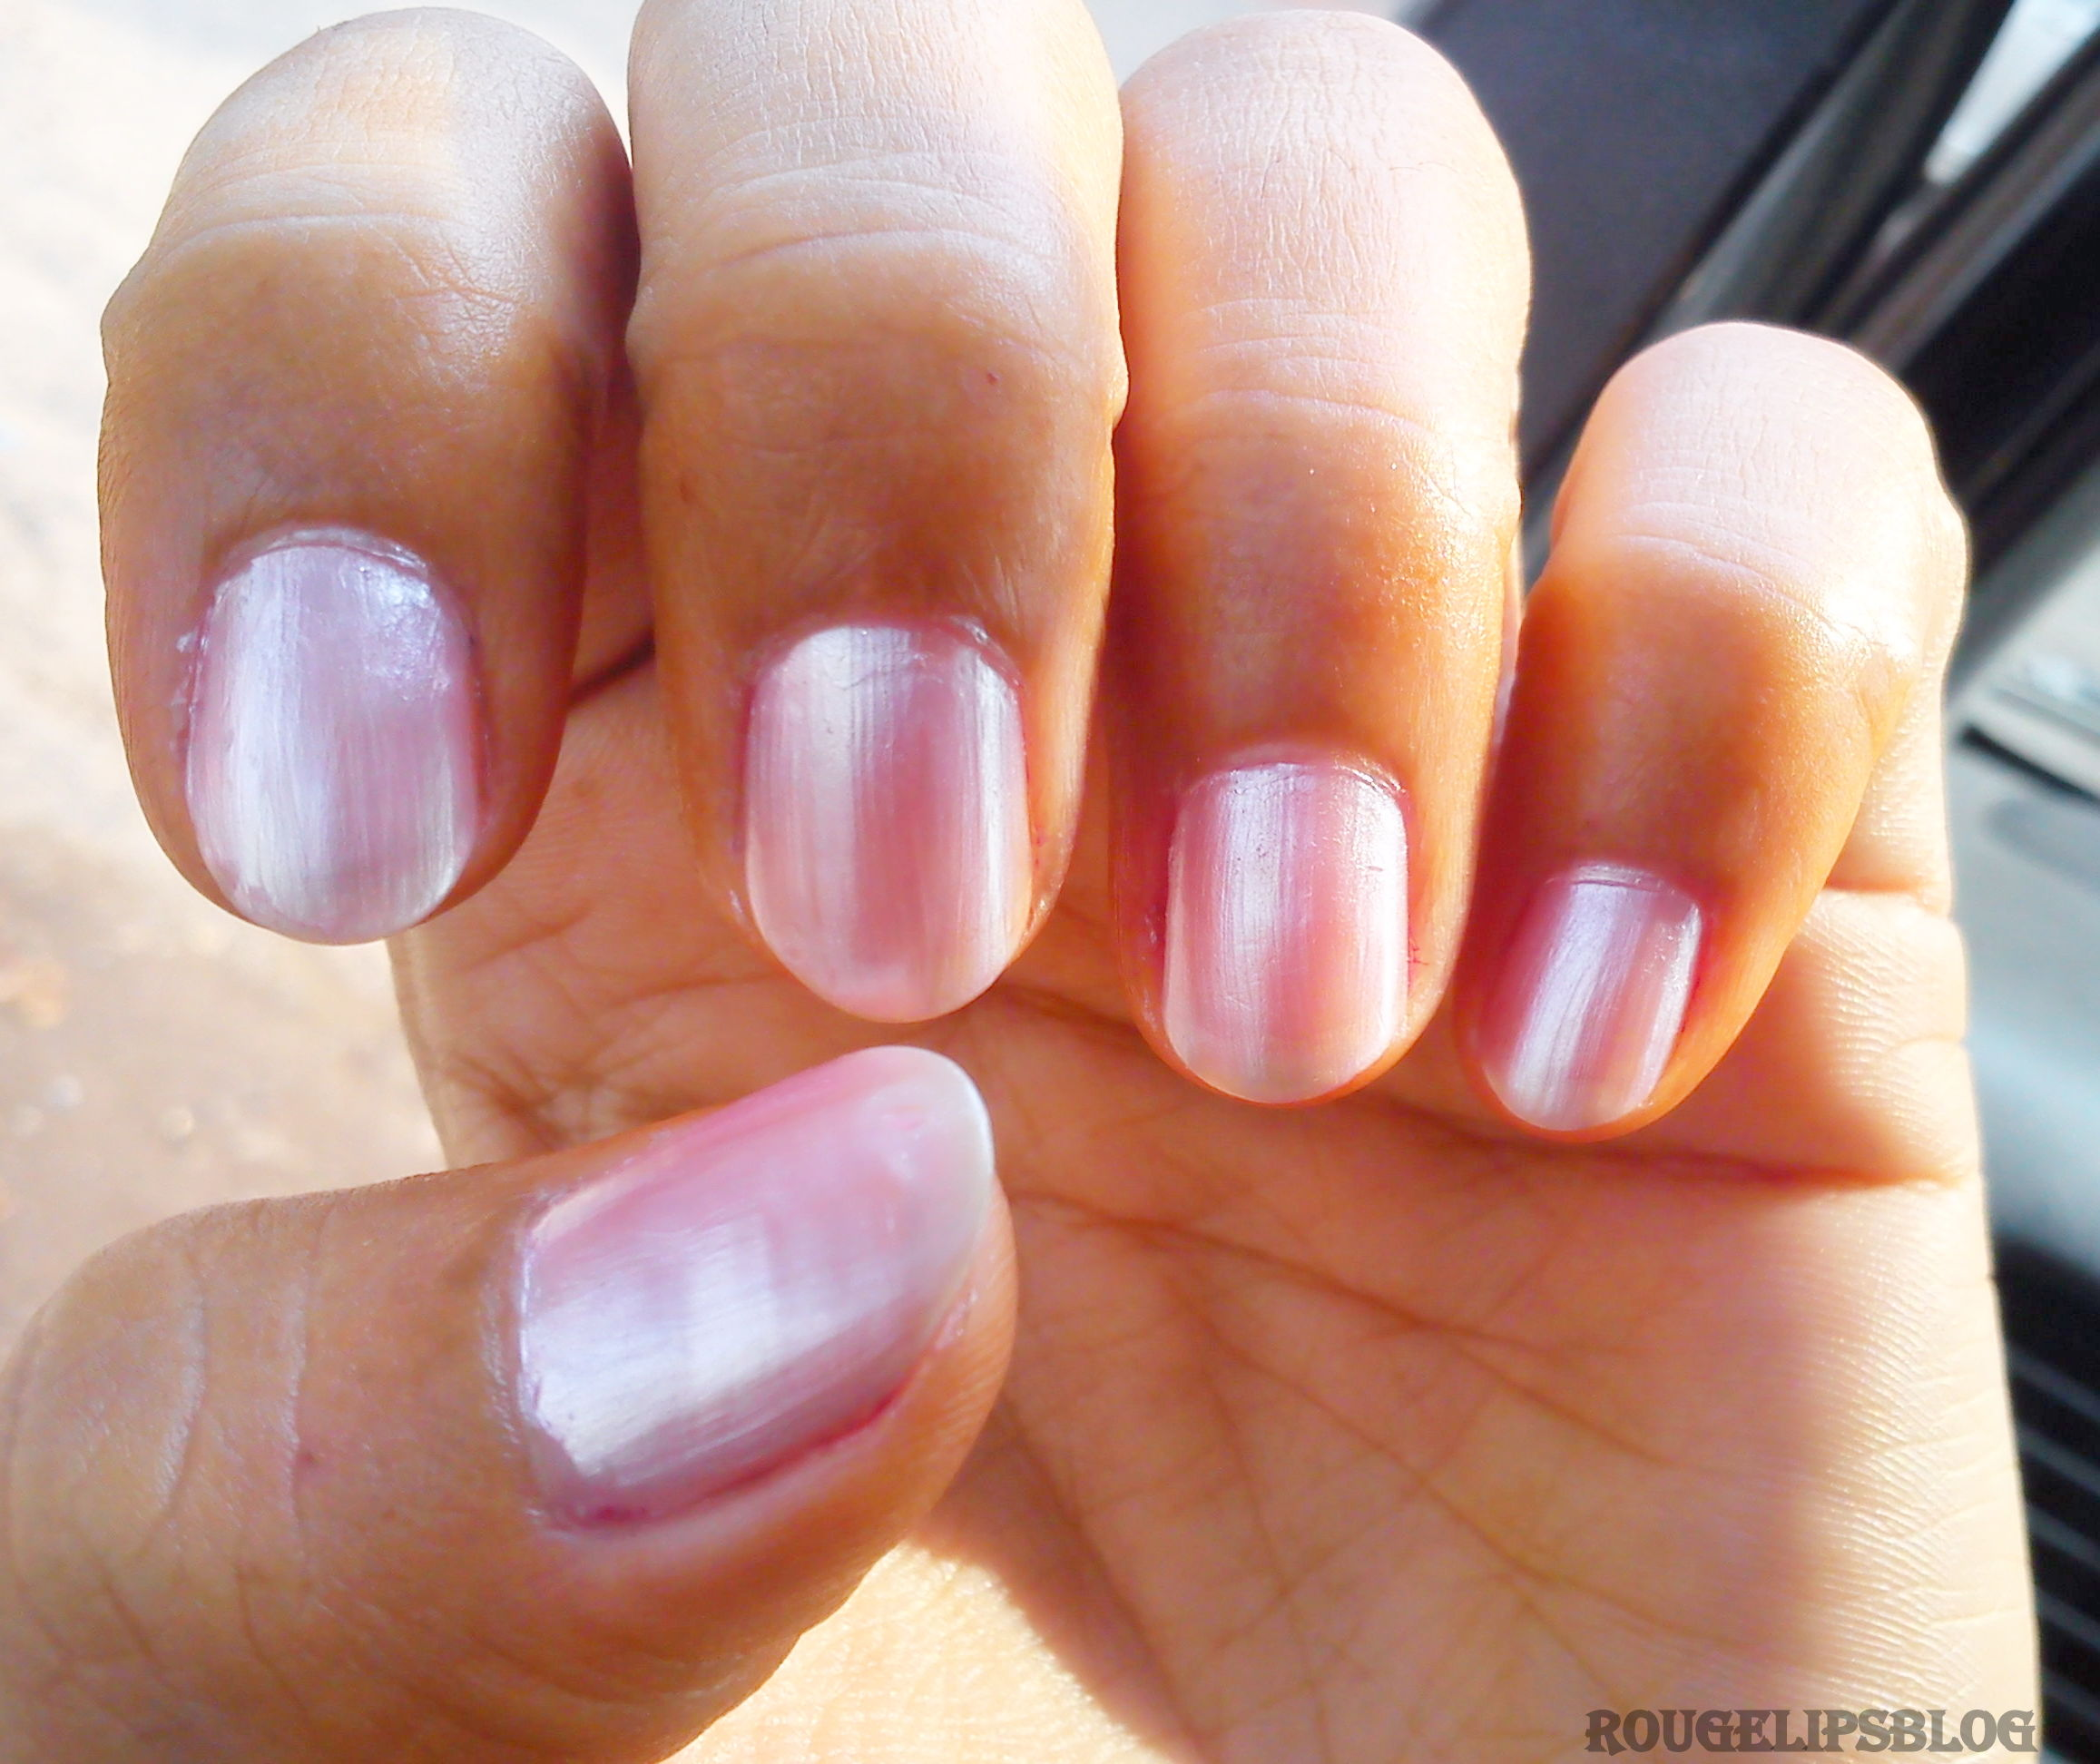 Graphic Nail Art With Maybelline Color Show Nail Paints Rougepouts